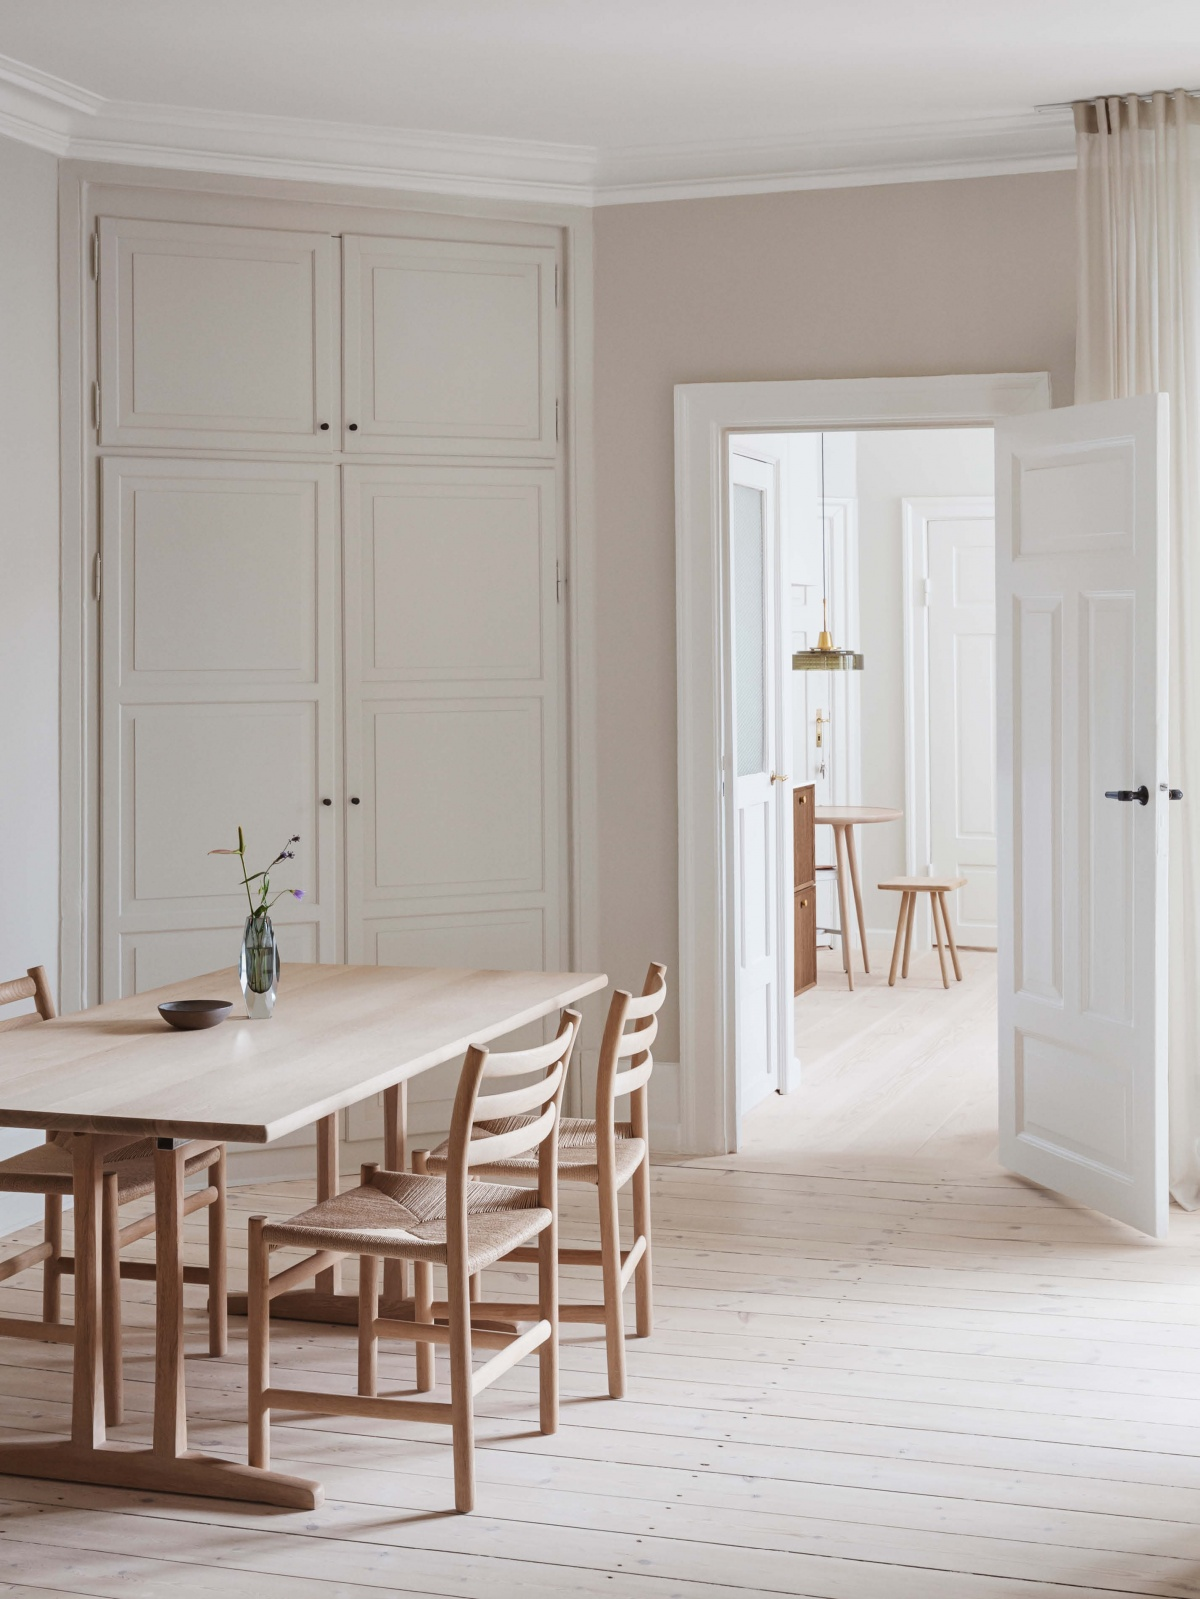 https://cdn-www.reformcph.com/LIght kitchen with dining table